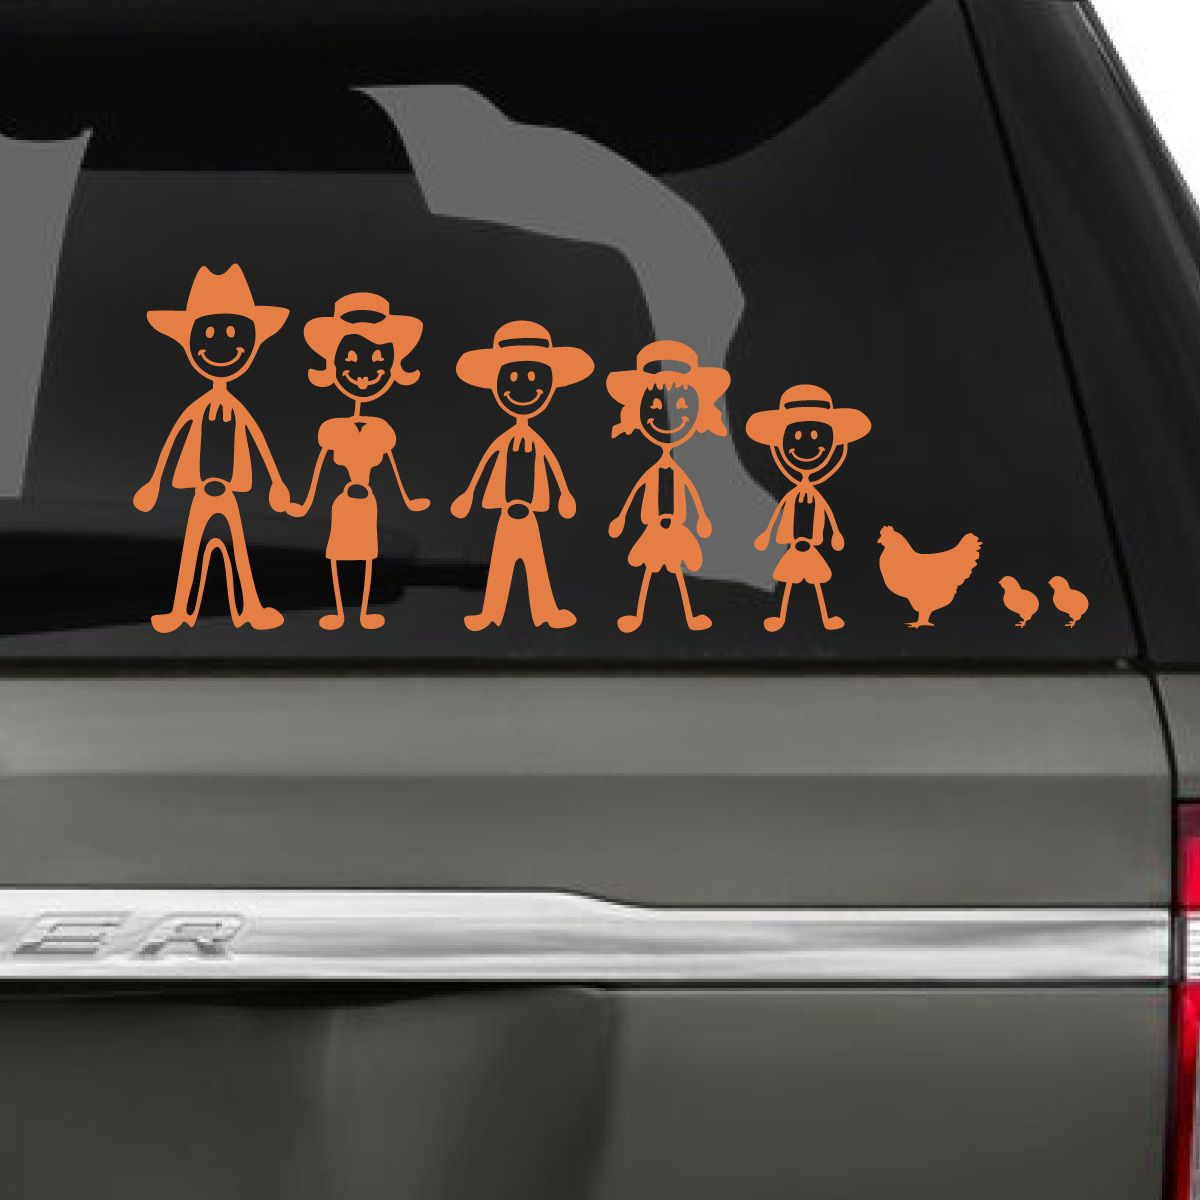 Cowboy Family Car Decal Family Car Decals Family Car Stickers Car Decals [ 1200 x 1200 Pixel ]